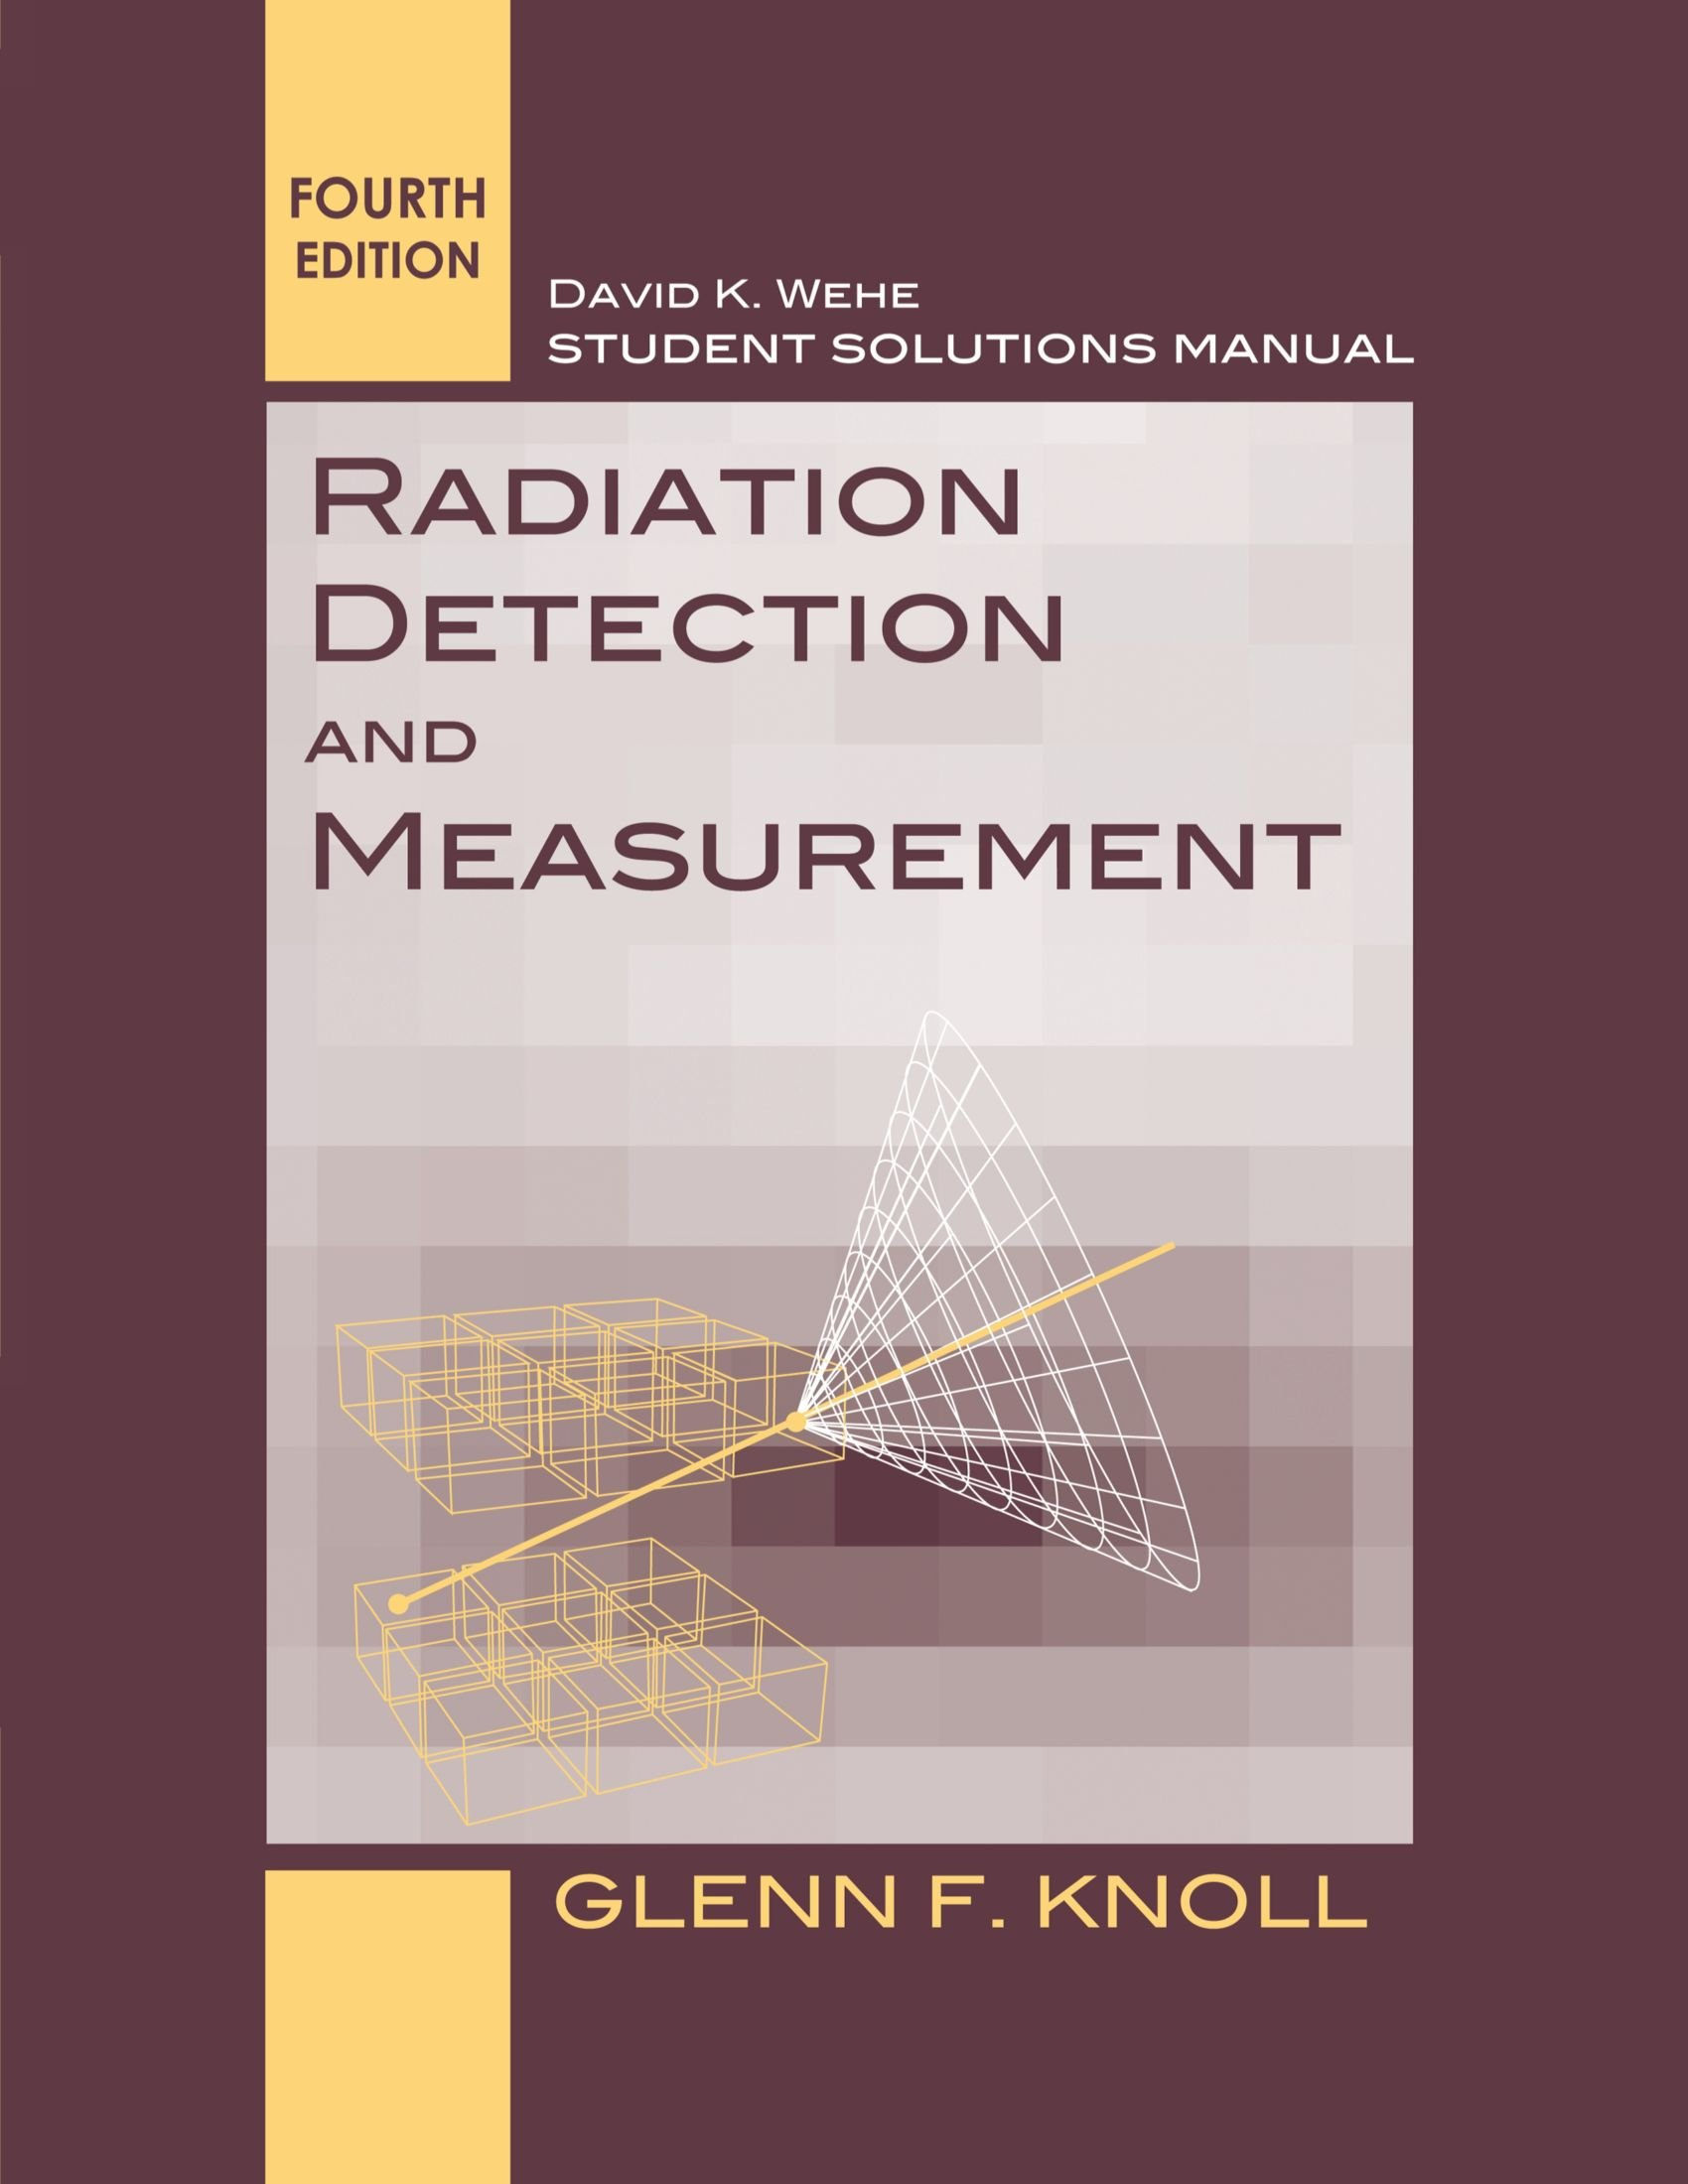 Student Solutions Manual to accompany Radiation Detection and Measurement,  4e: Glenn F. Knoll: 9780470649725: Books - Amazon.ca